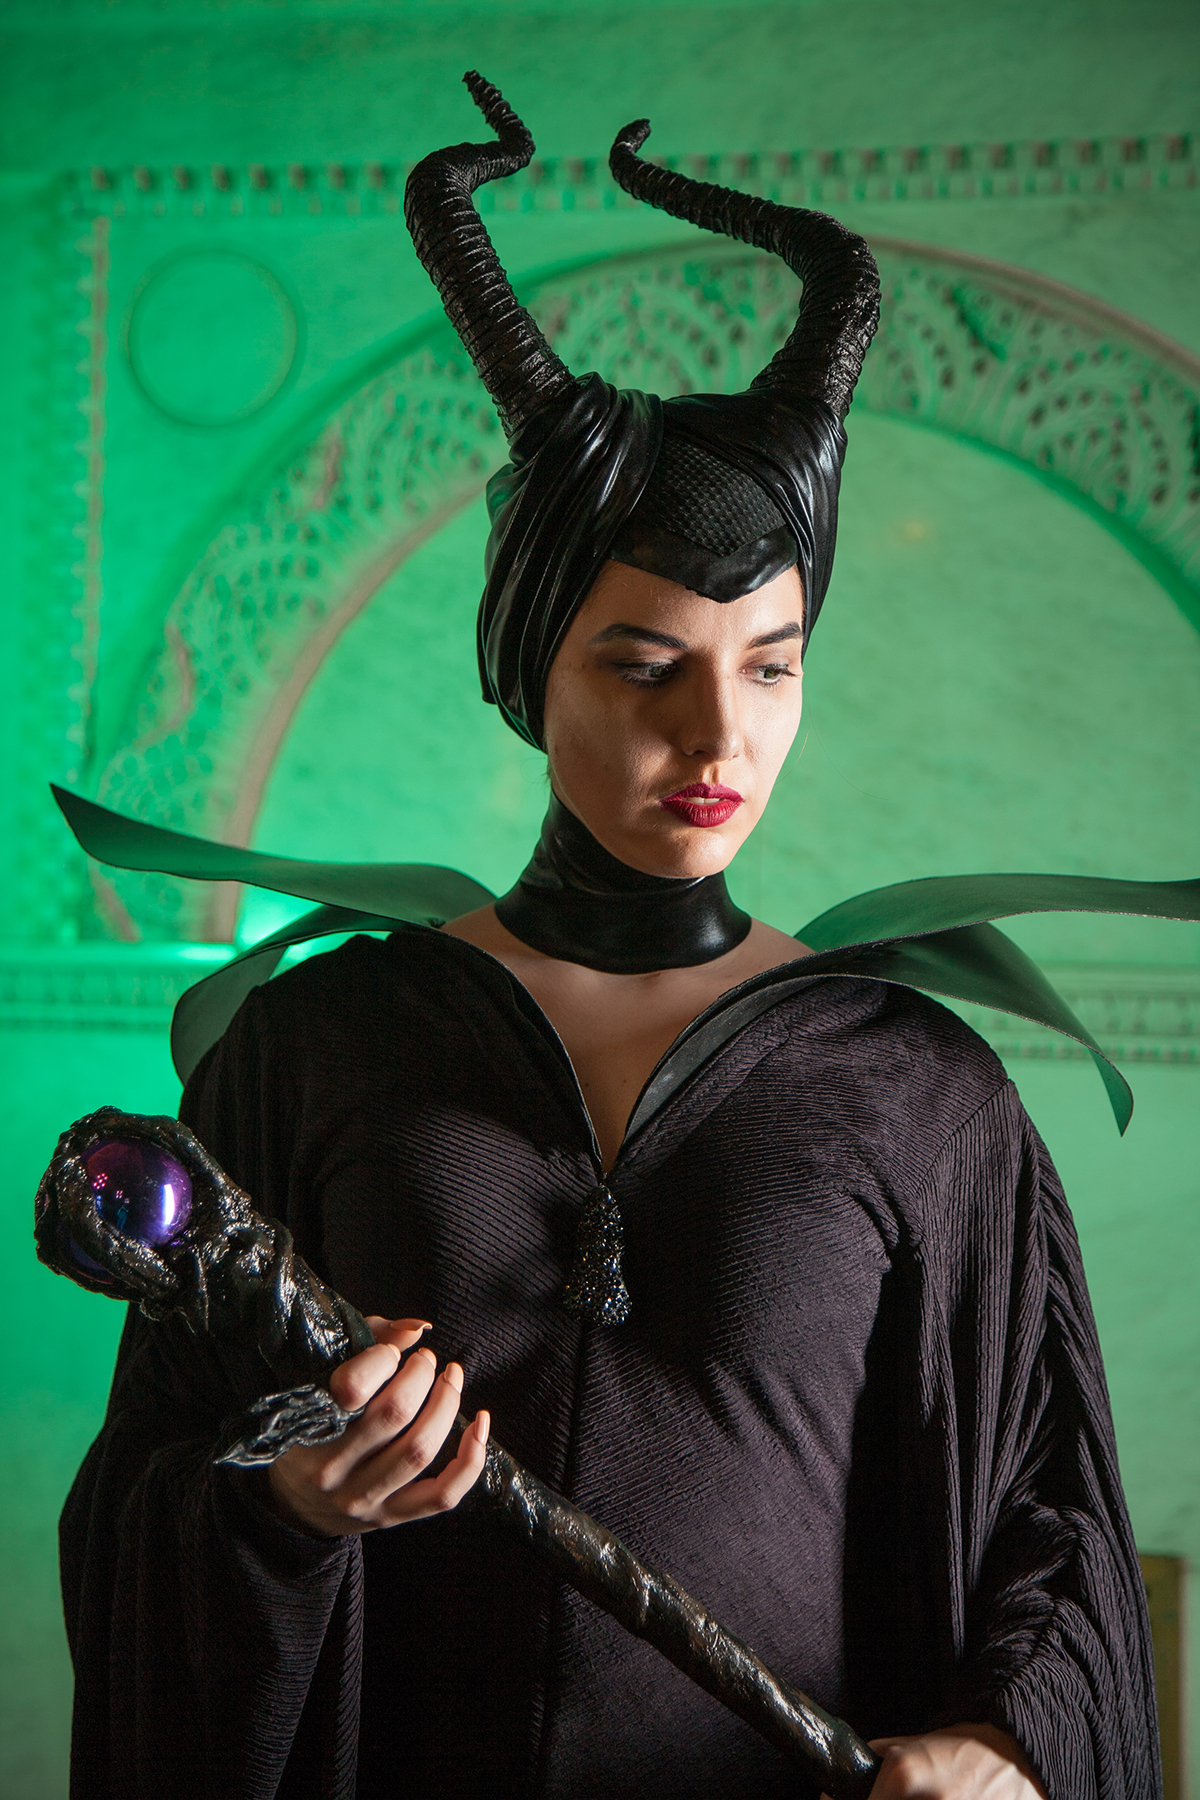 A Maleficent cosplayer, holding her stuff. She is pictured against a green background.